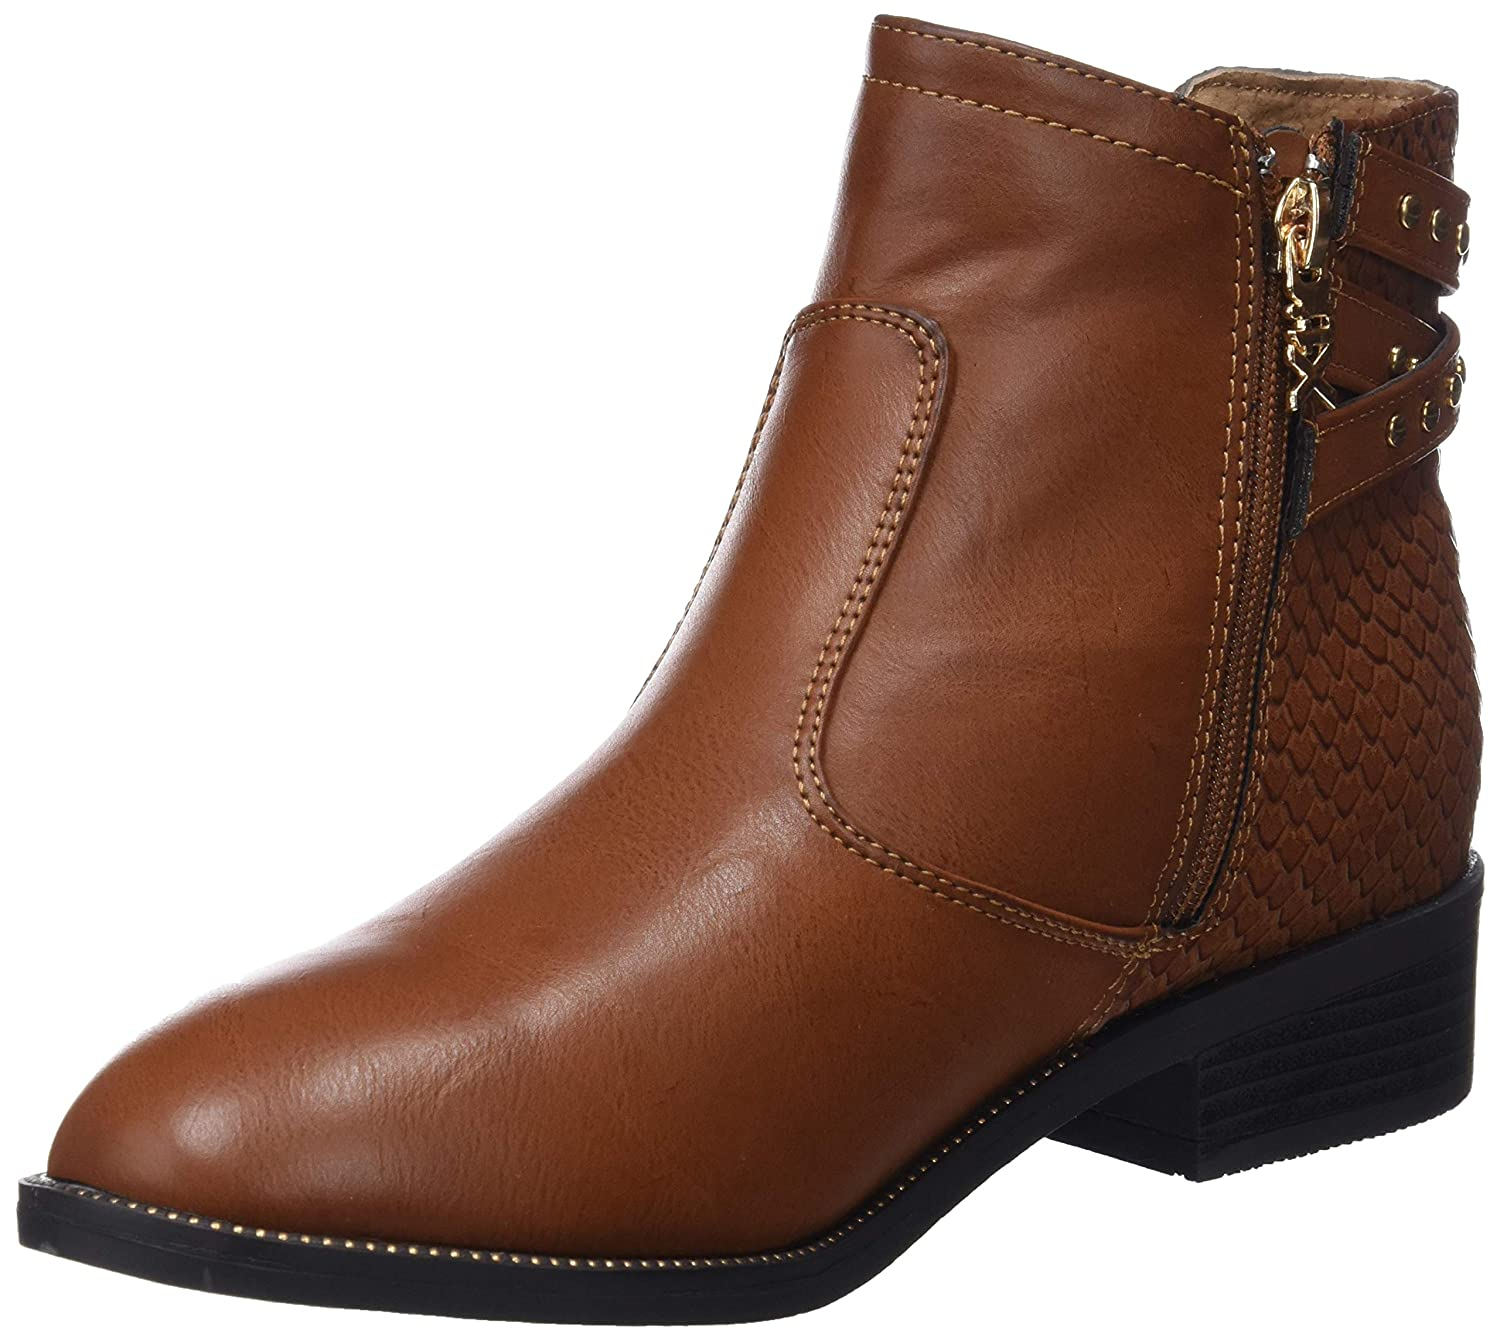 Amazon.com Xti 48433 Womens Boots Tan Clothing